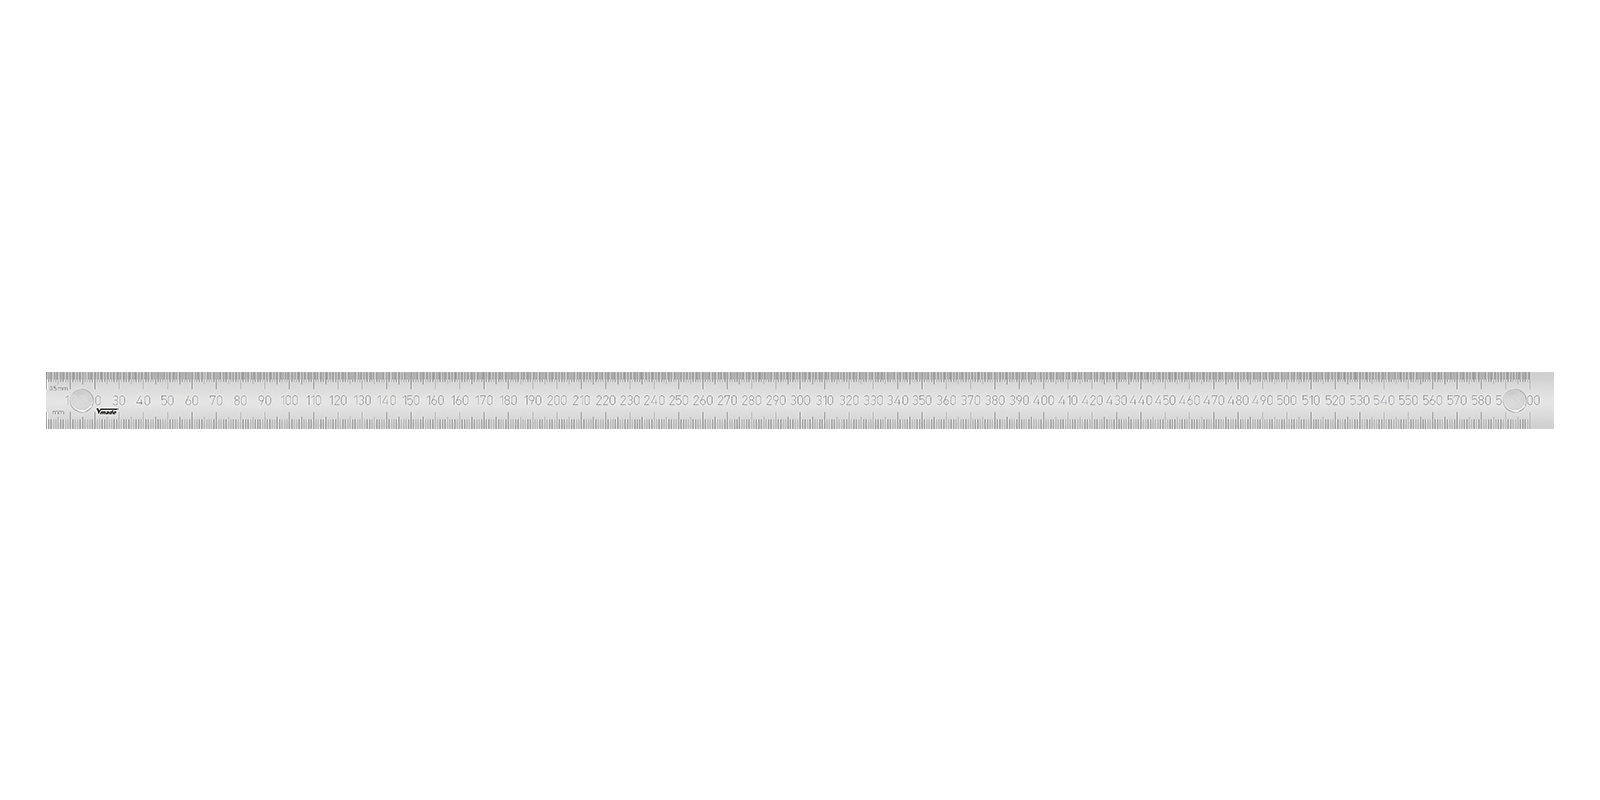 Magnetic stainless steel ruler 1200x30x1 mm